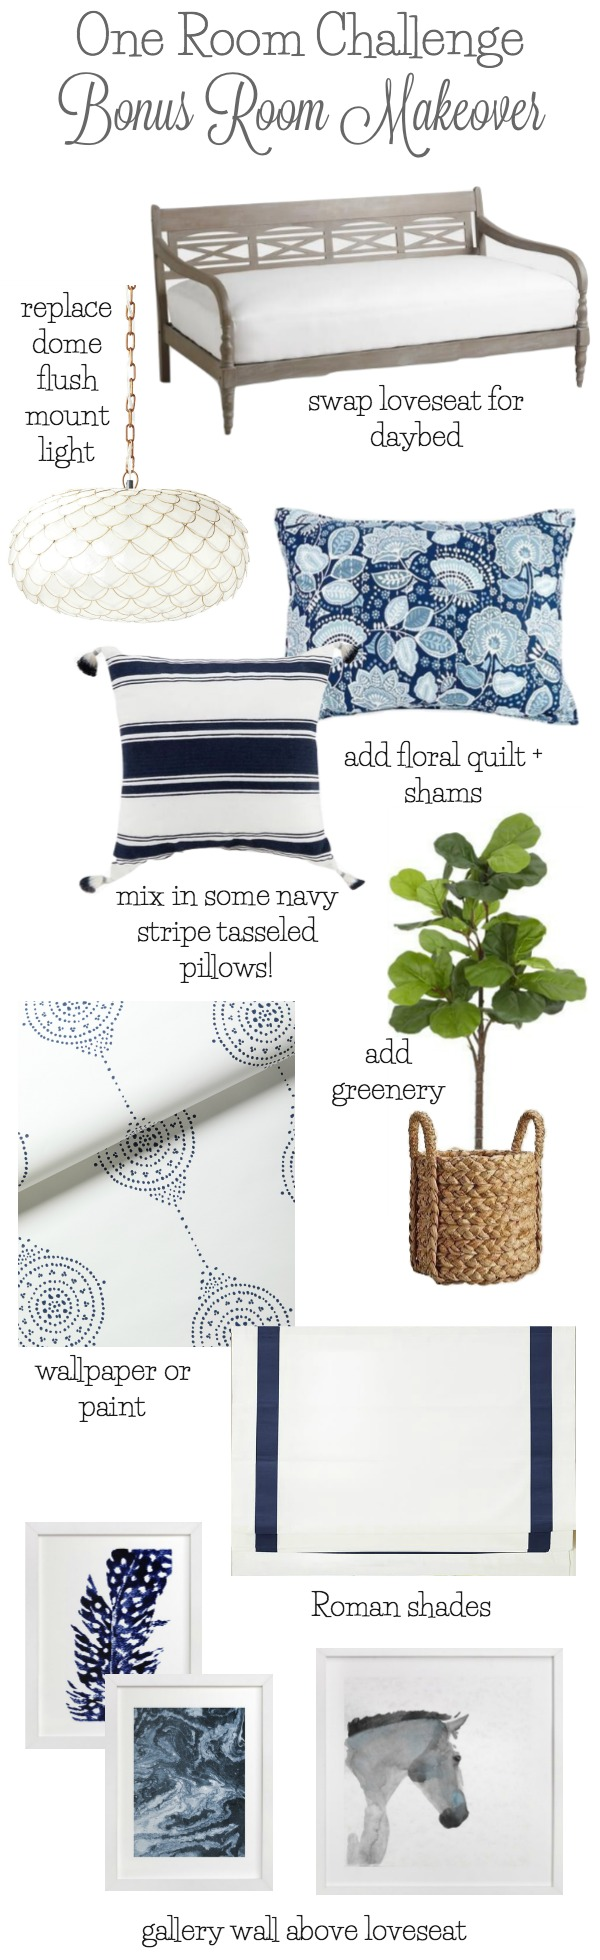 My design plans for making over our bonus room with a blue and white color scheme!